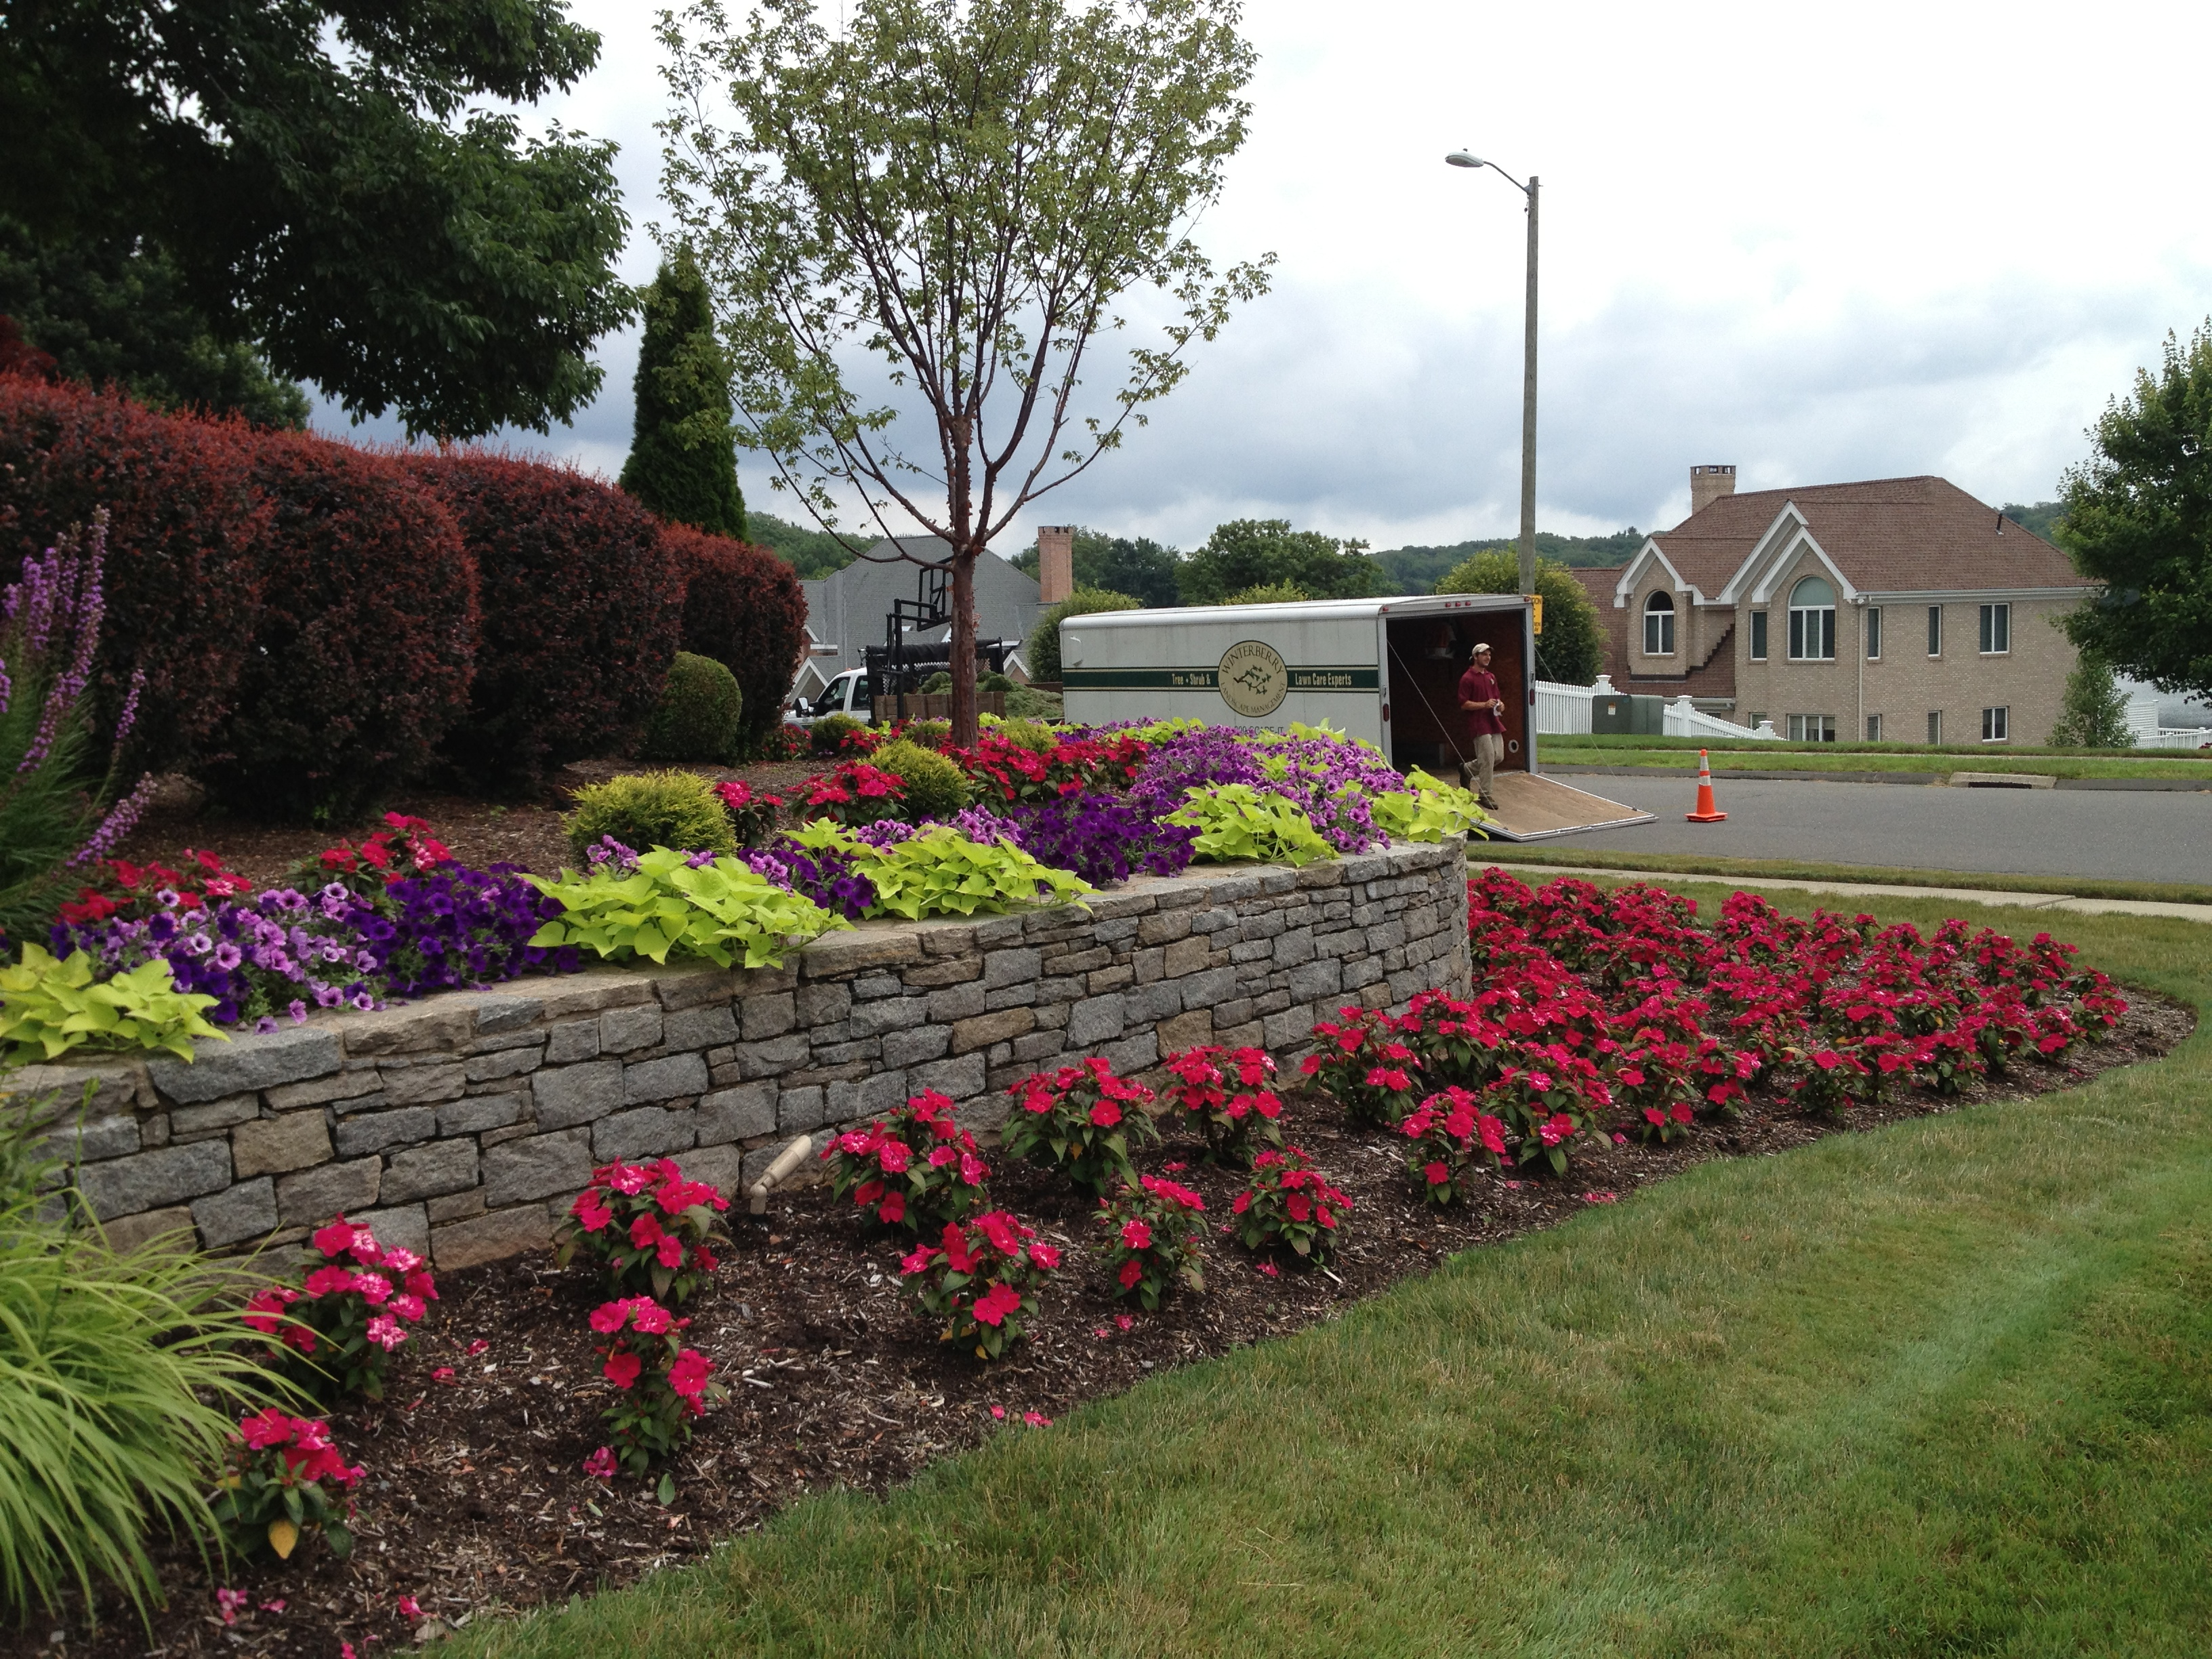 ... Landscape And Garden Center. We Provide Premium Lawn Care, Customized  Fertilization Programs And Athletic Field Maintenance Services In  Southington, ...